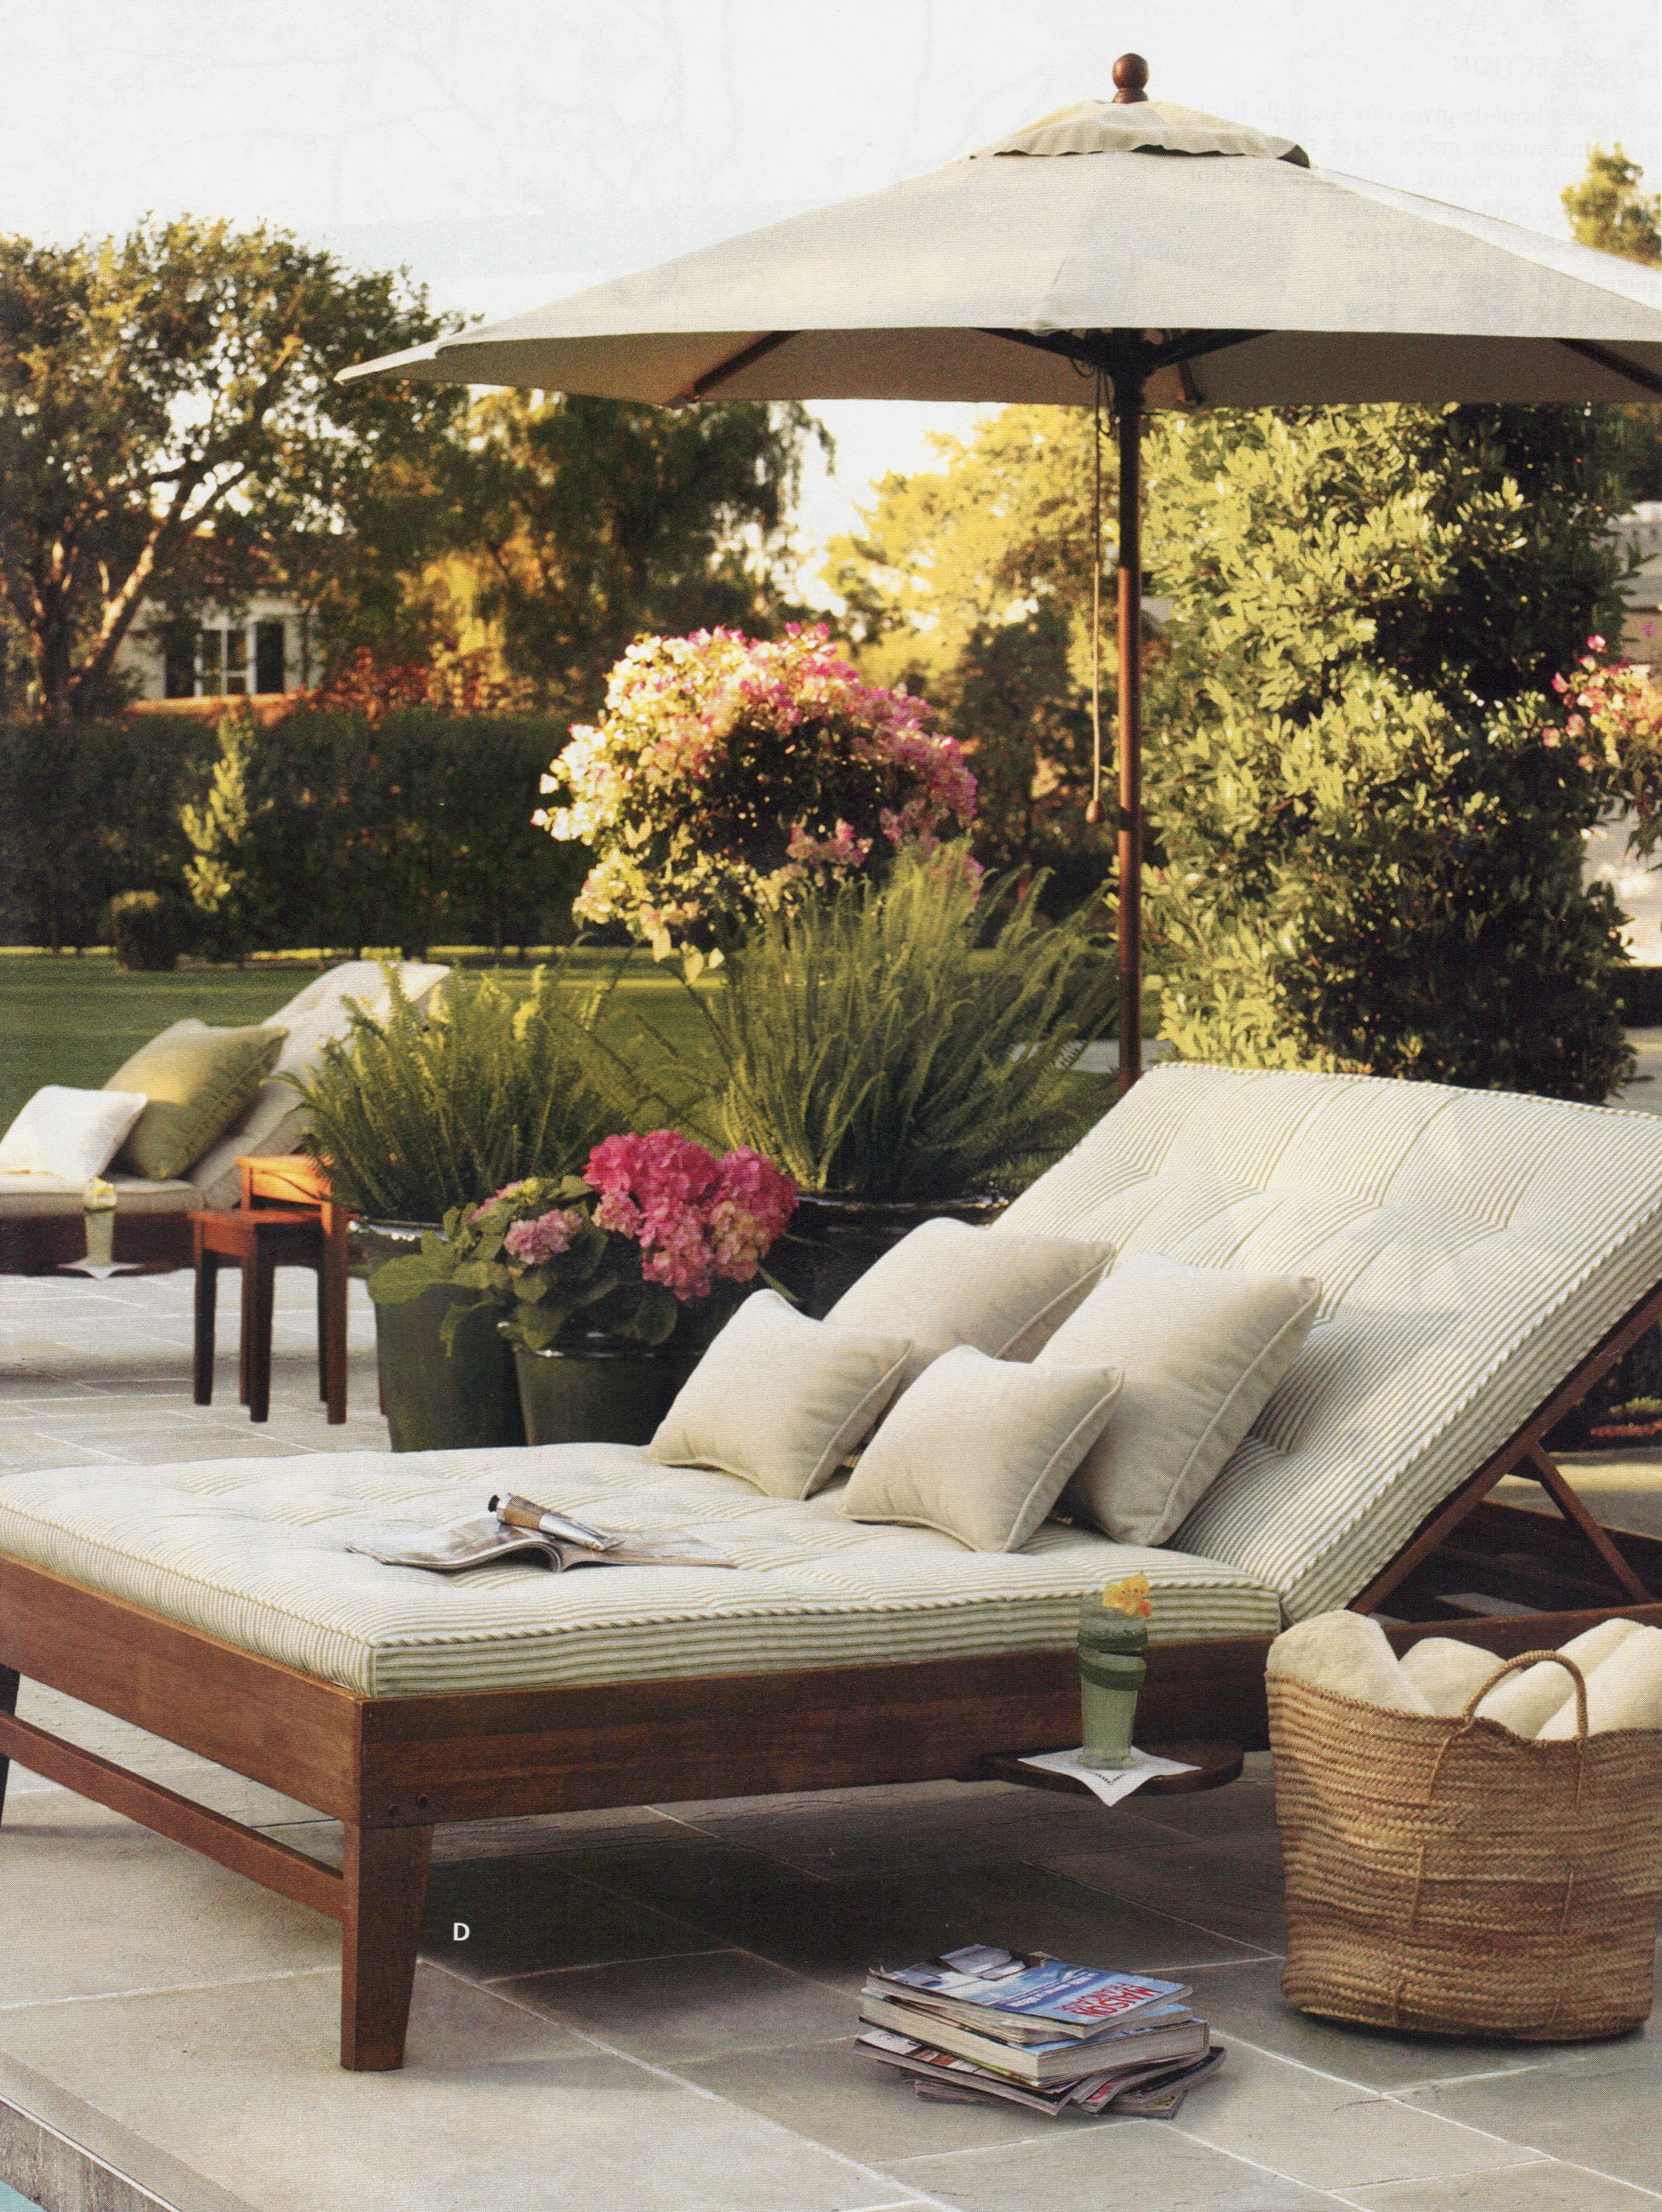 Oversized Patio Chair For A Lovely